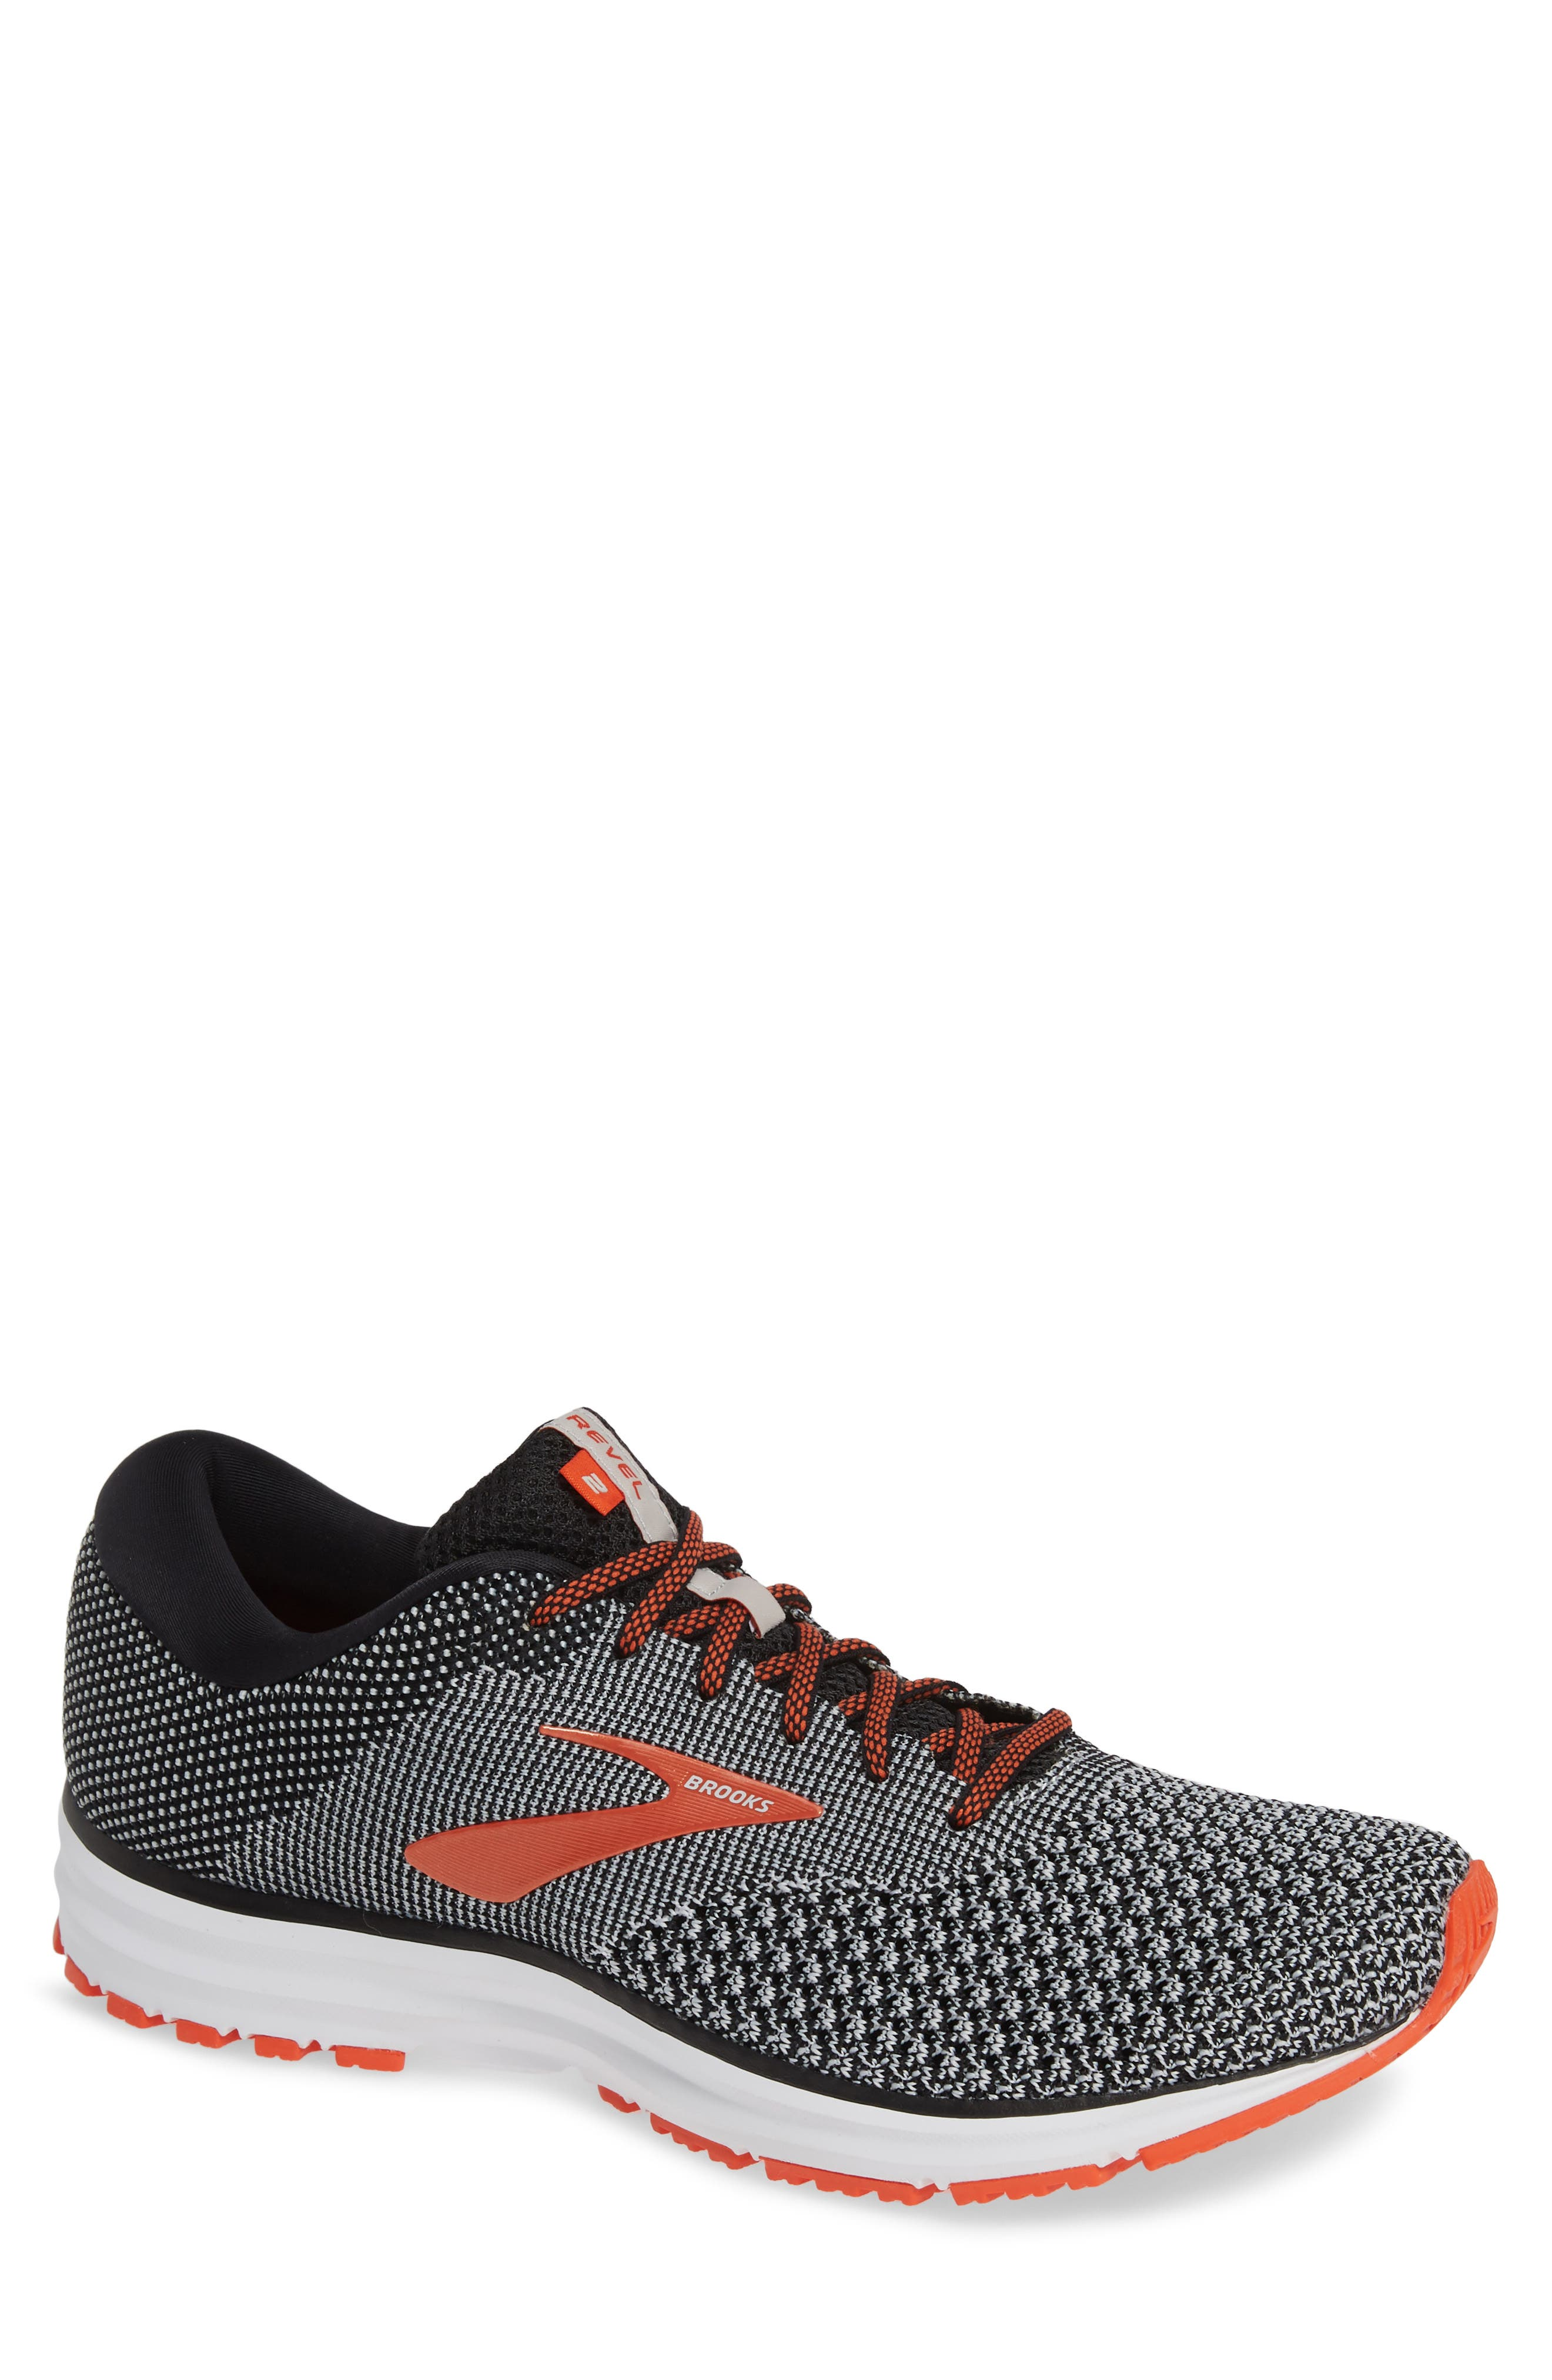 Revel 2 Running Shoe,                         Main,                         color, BLACK/ LIGHT GREY/ ORANGE